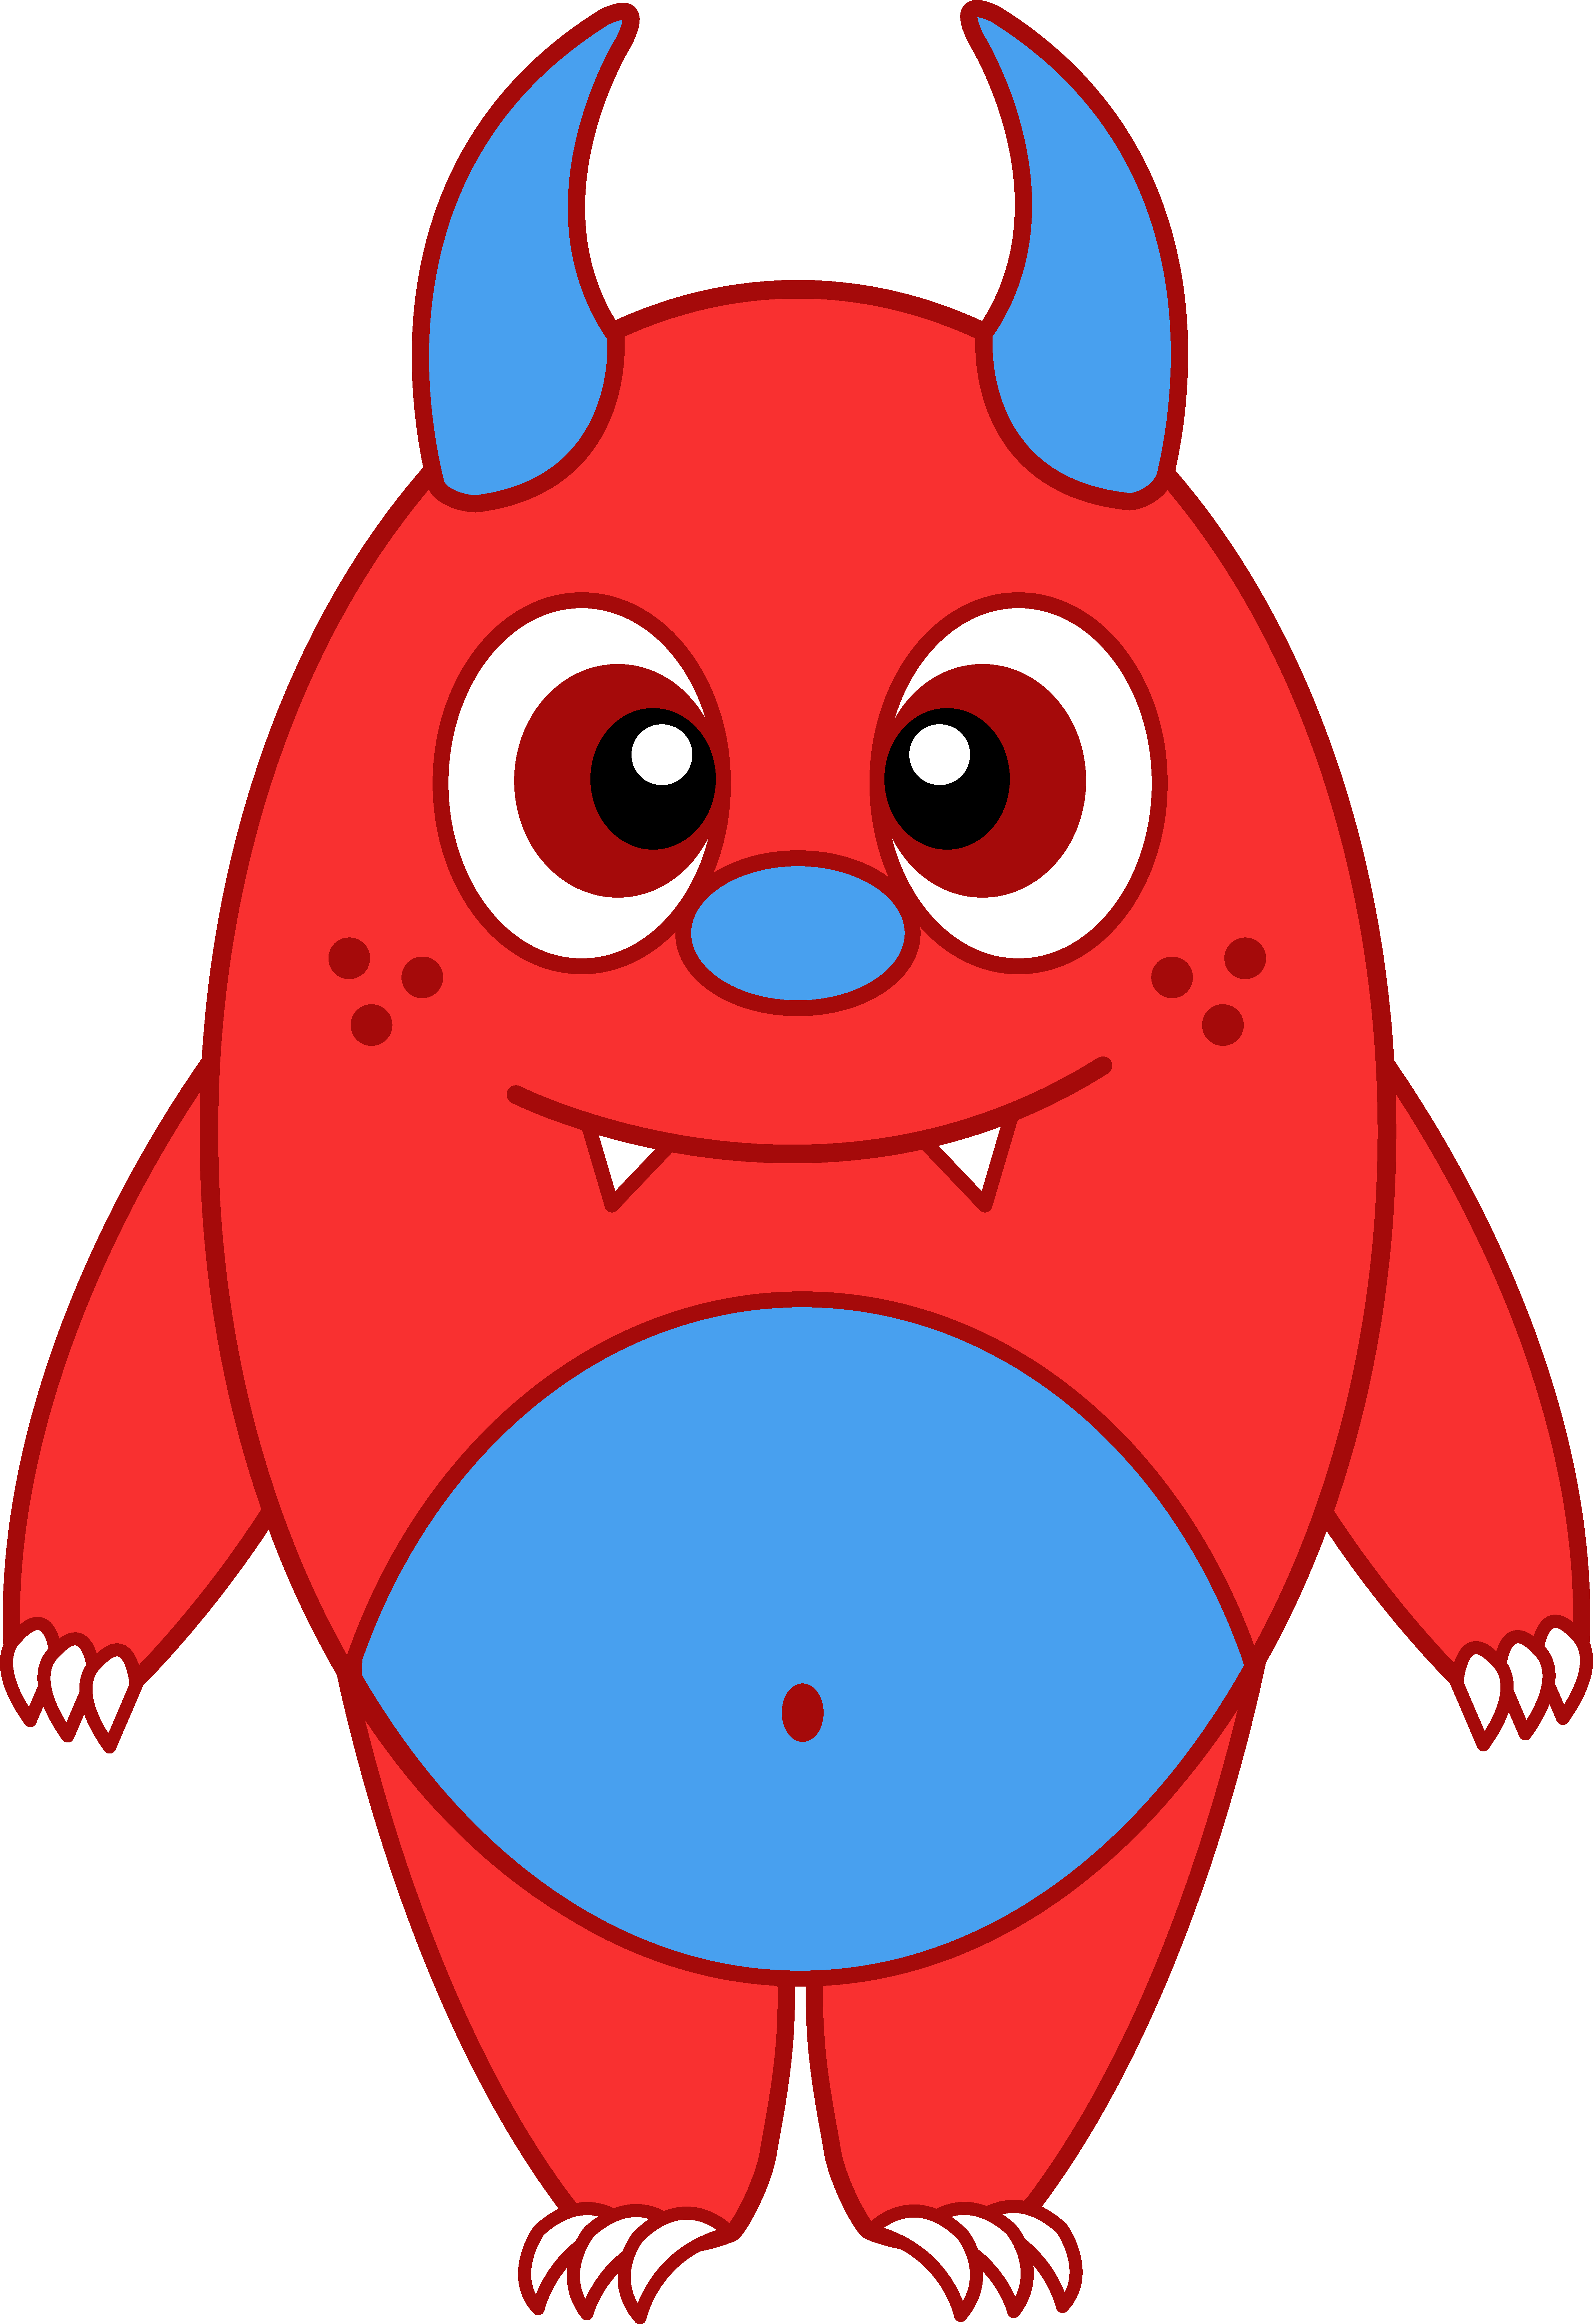 Monster clipart alein. Red panda free images